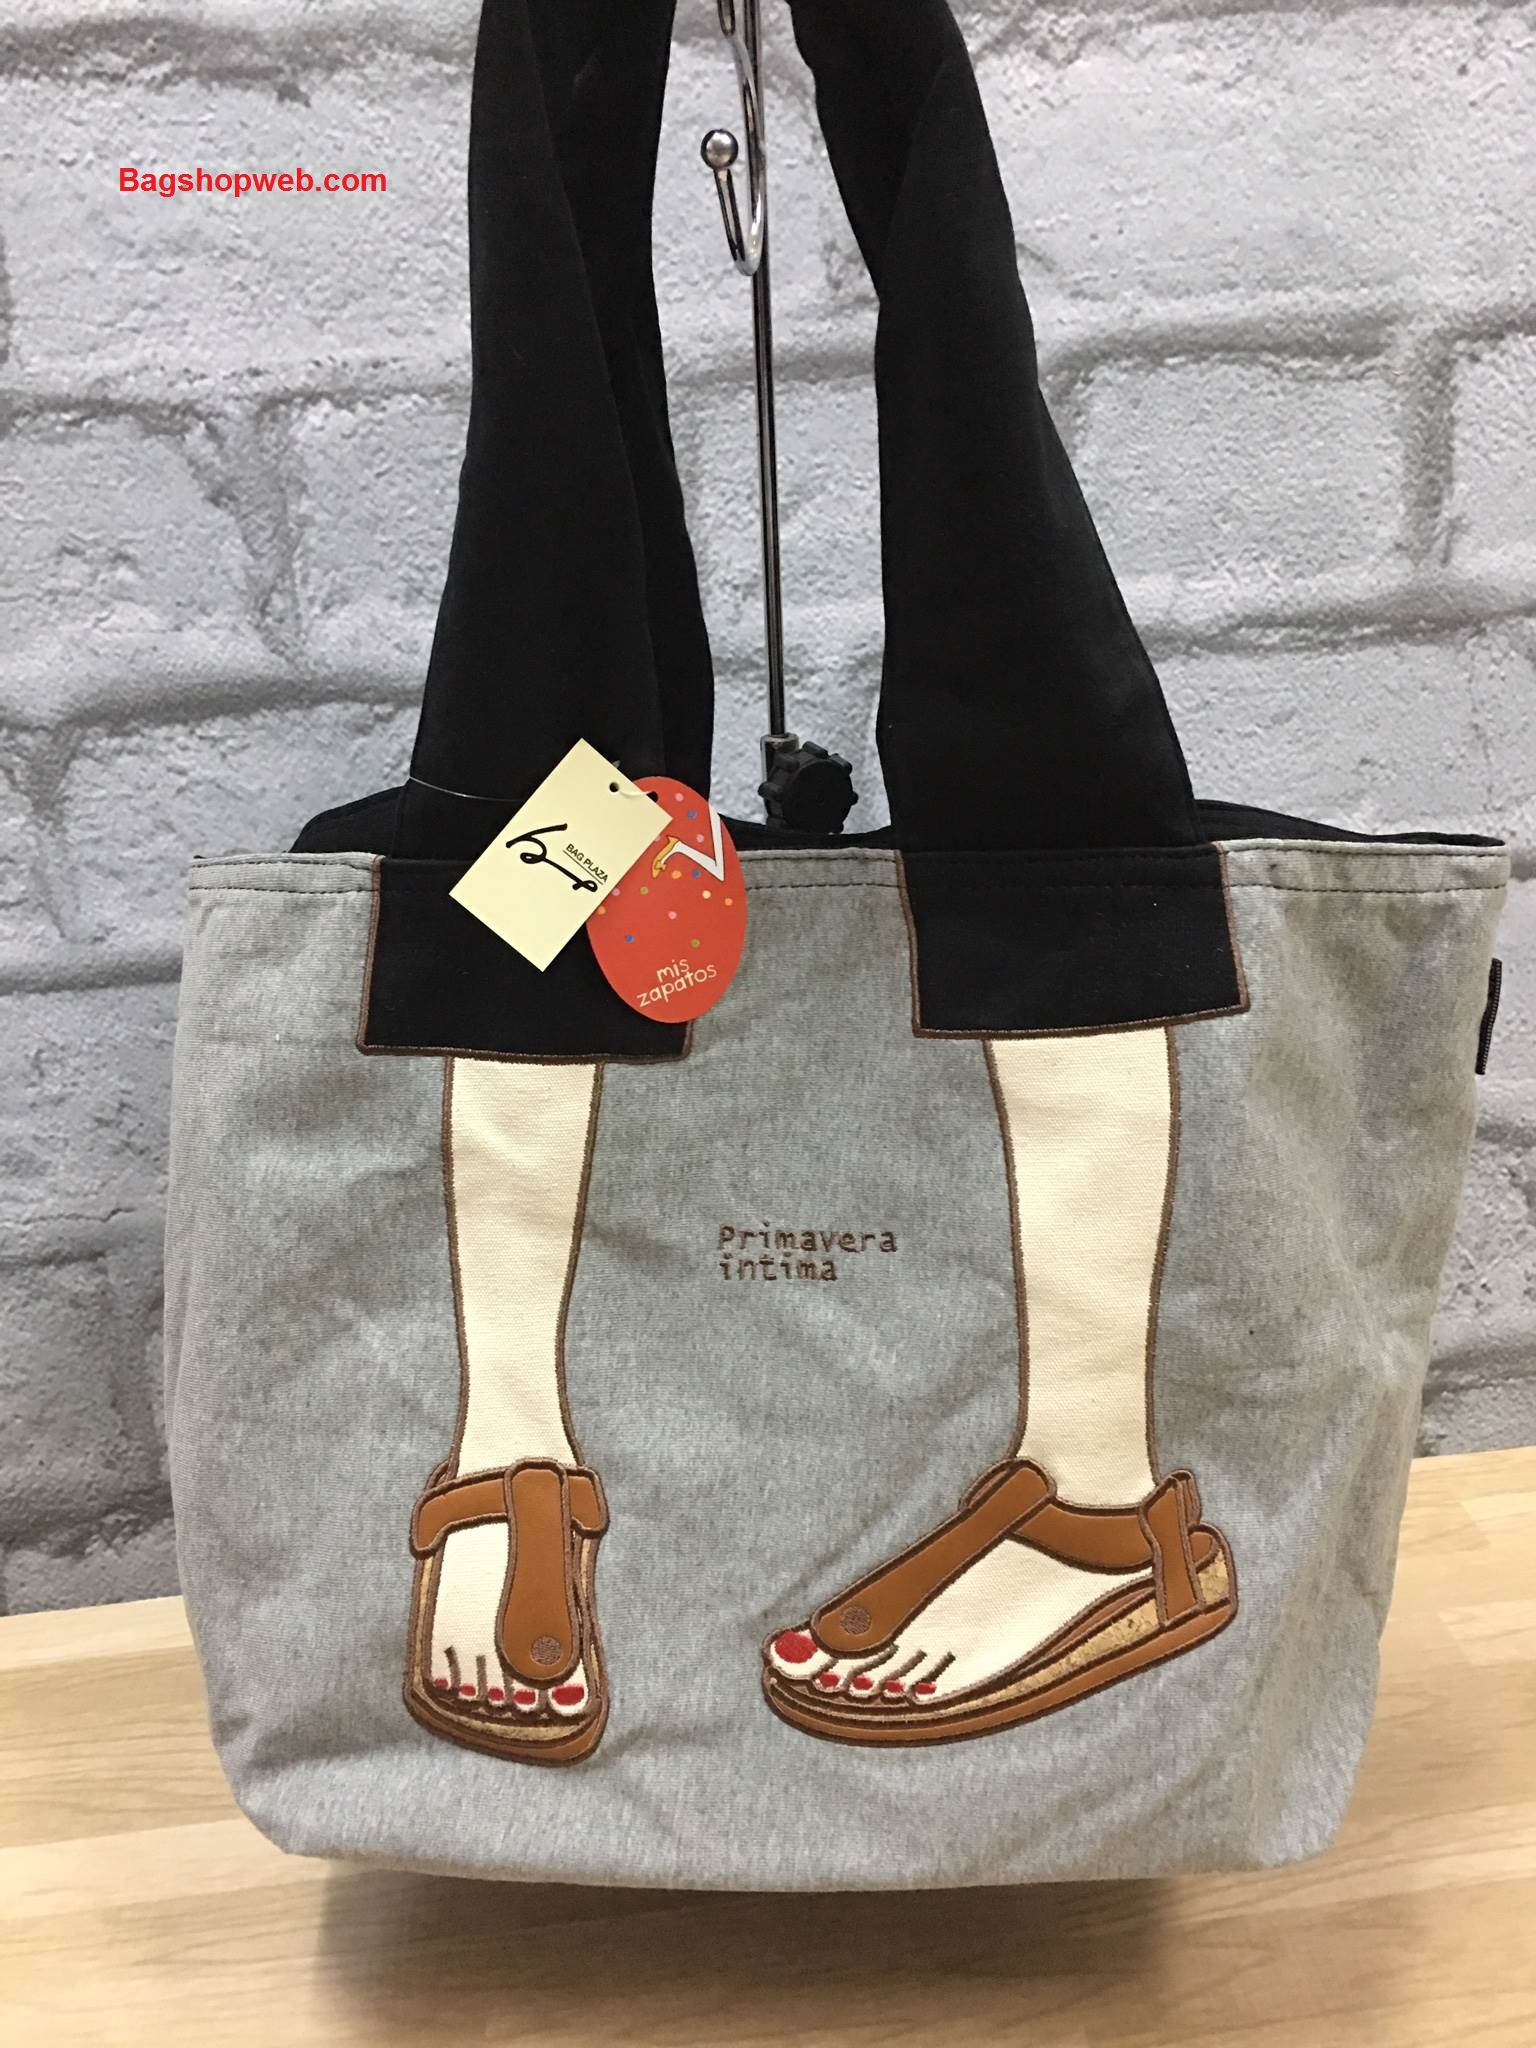 กระเป๋า Mis Zapatos turnovers sweet material shopping bag C ราคา 1,090 บาท Free Ems